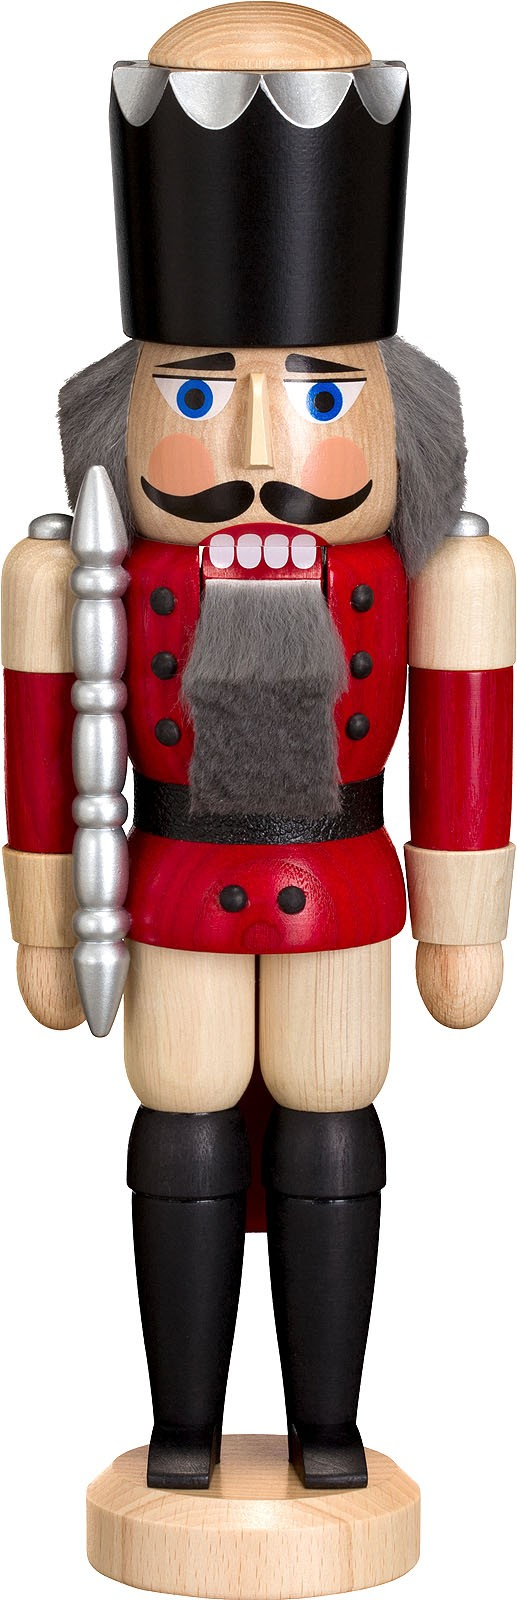 nutcracker king, ash tree glazed, red